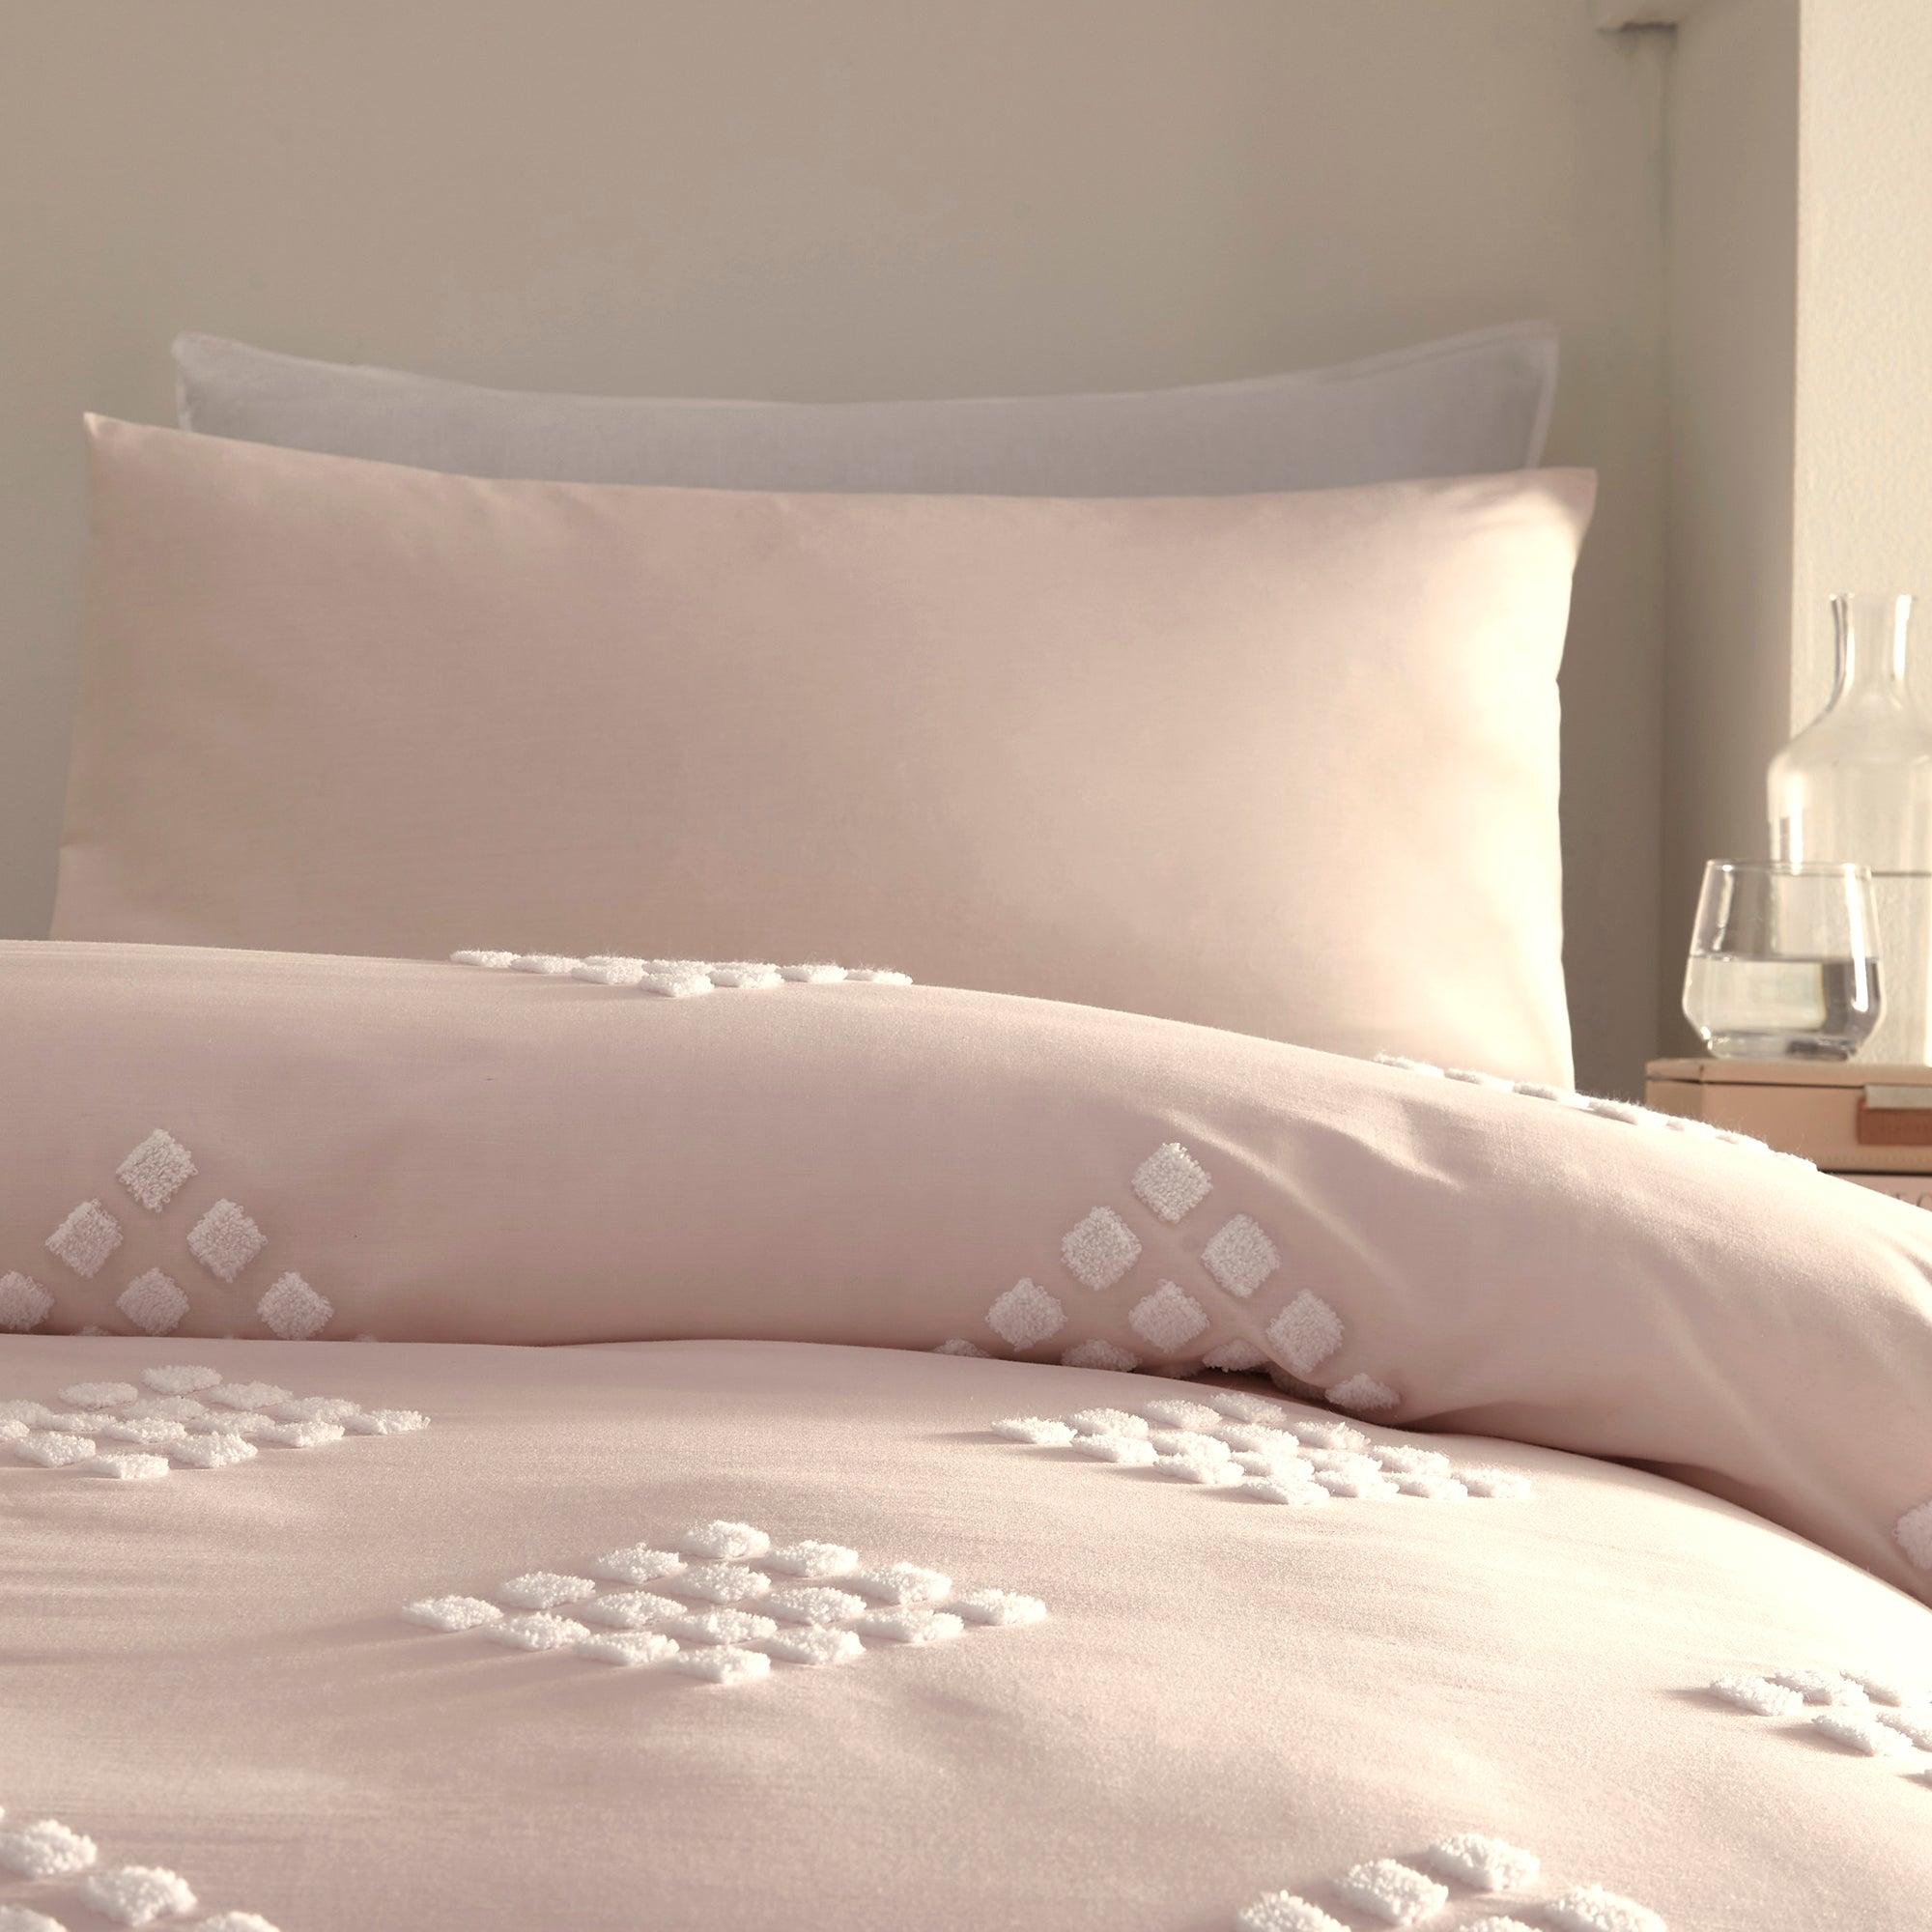 Diamond Tuft - 100% Cotton Duvet Cover Set in Blush - by Appletree Boutique